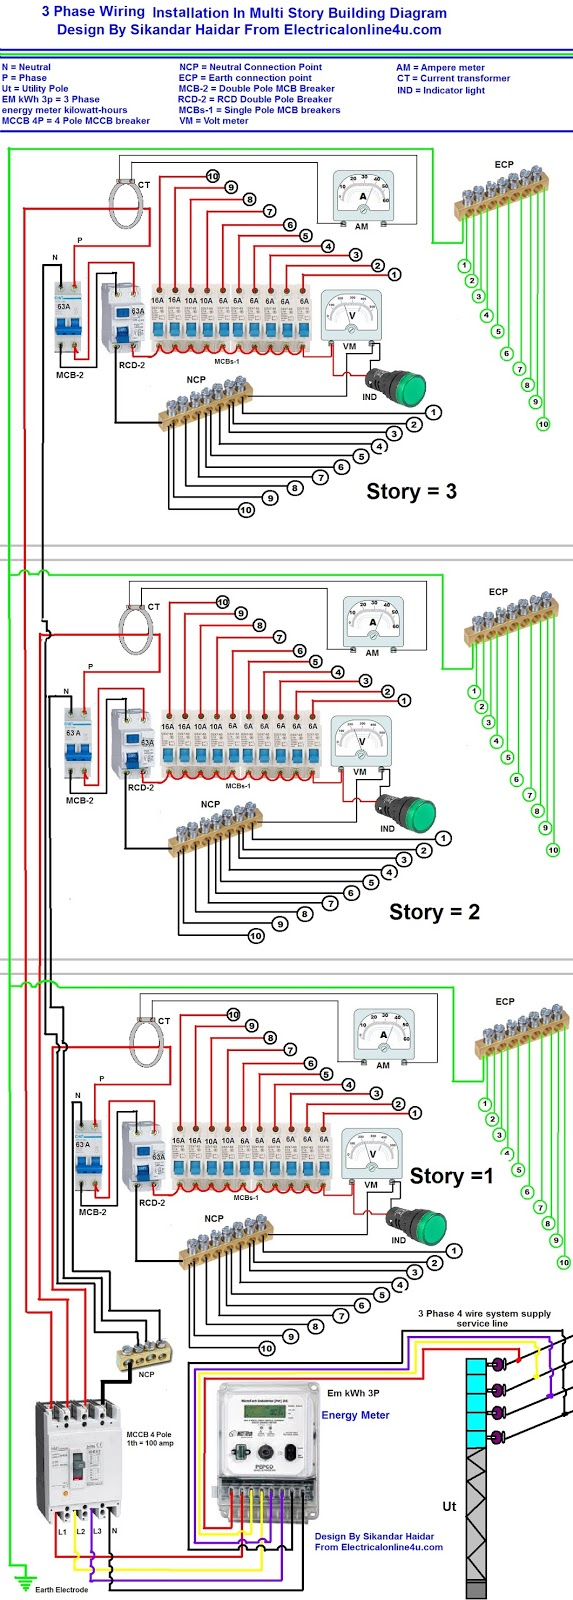 3 phase house wiring schema wiring diagram 3 phase home wiring diagram set wiring diagram database [ 573 x 1600 Pixel ]